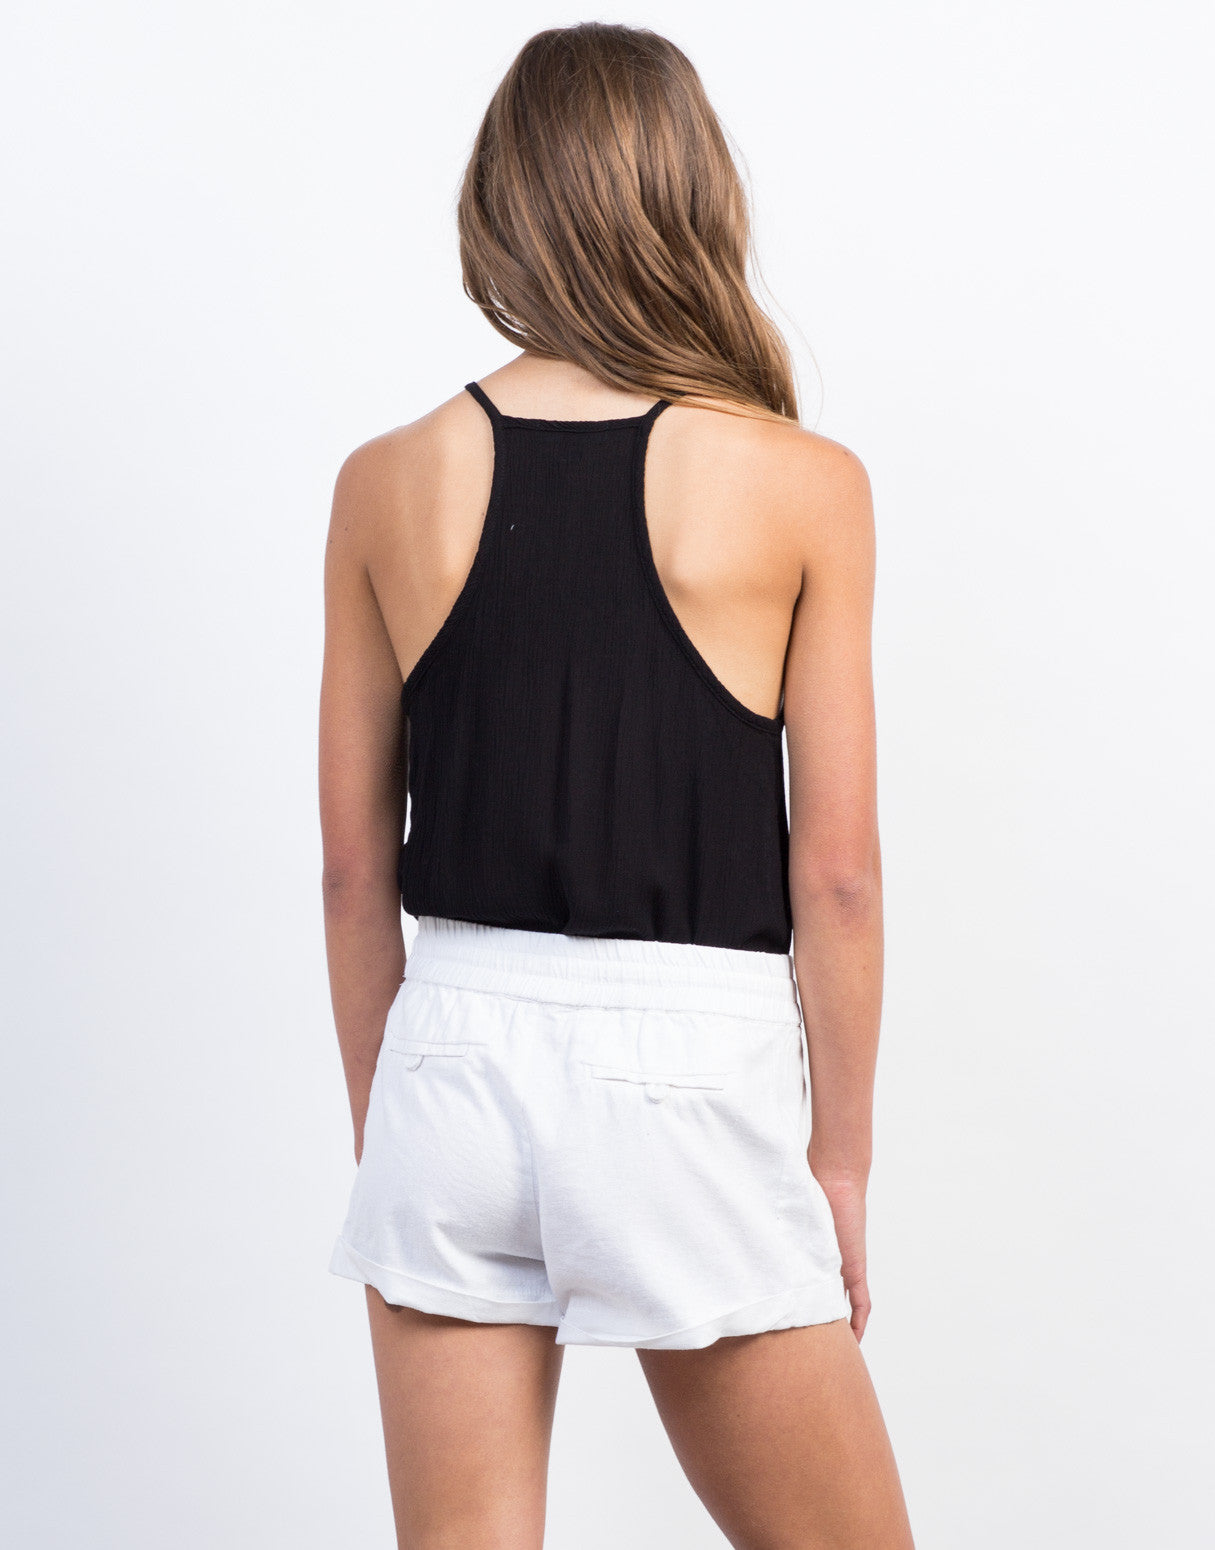 Back View of Linen Jogger Shorts